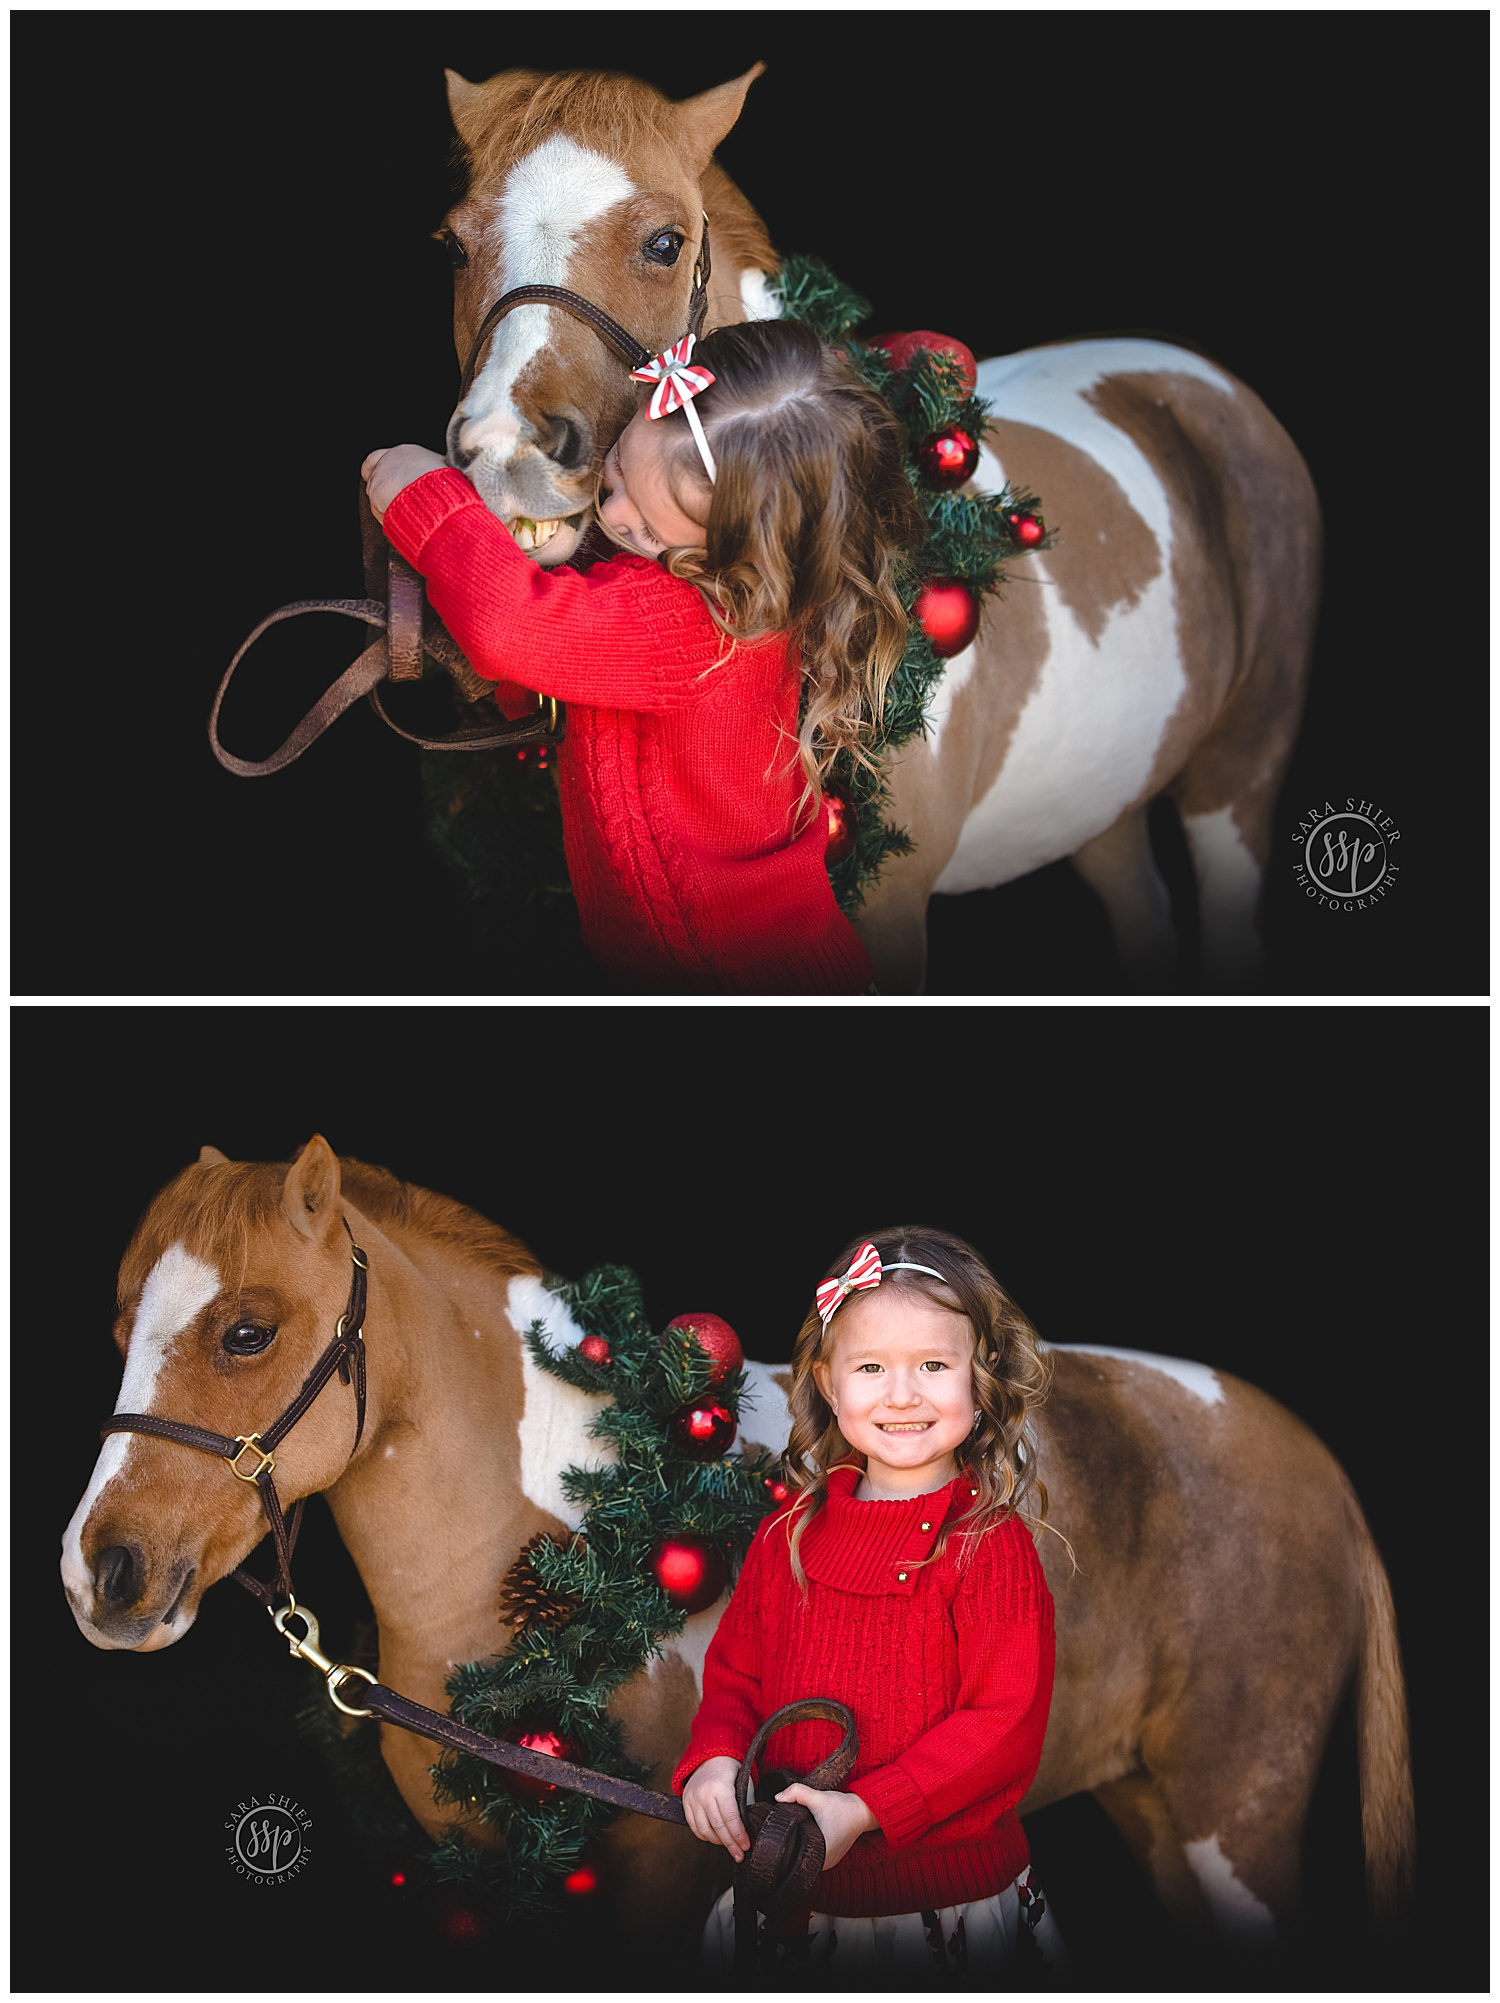 Black Background Horse Rider Equine Photographer Southern California Sara Shier Photography SoCal Equestrian Cowgirl_0165.jpg